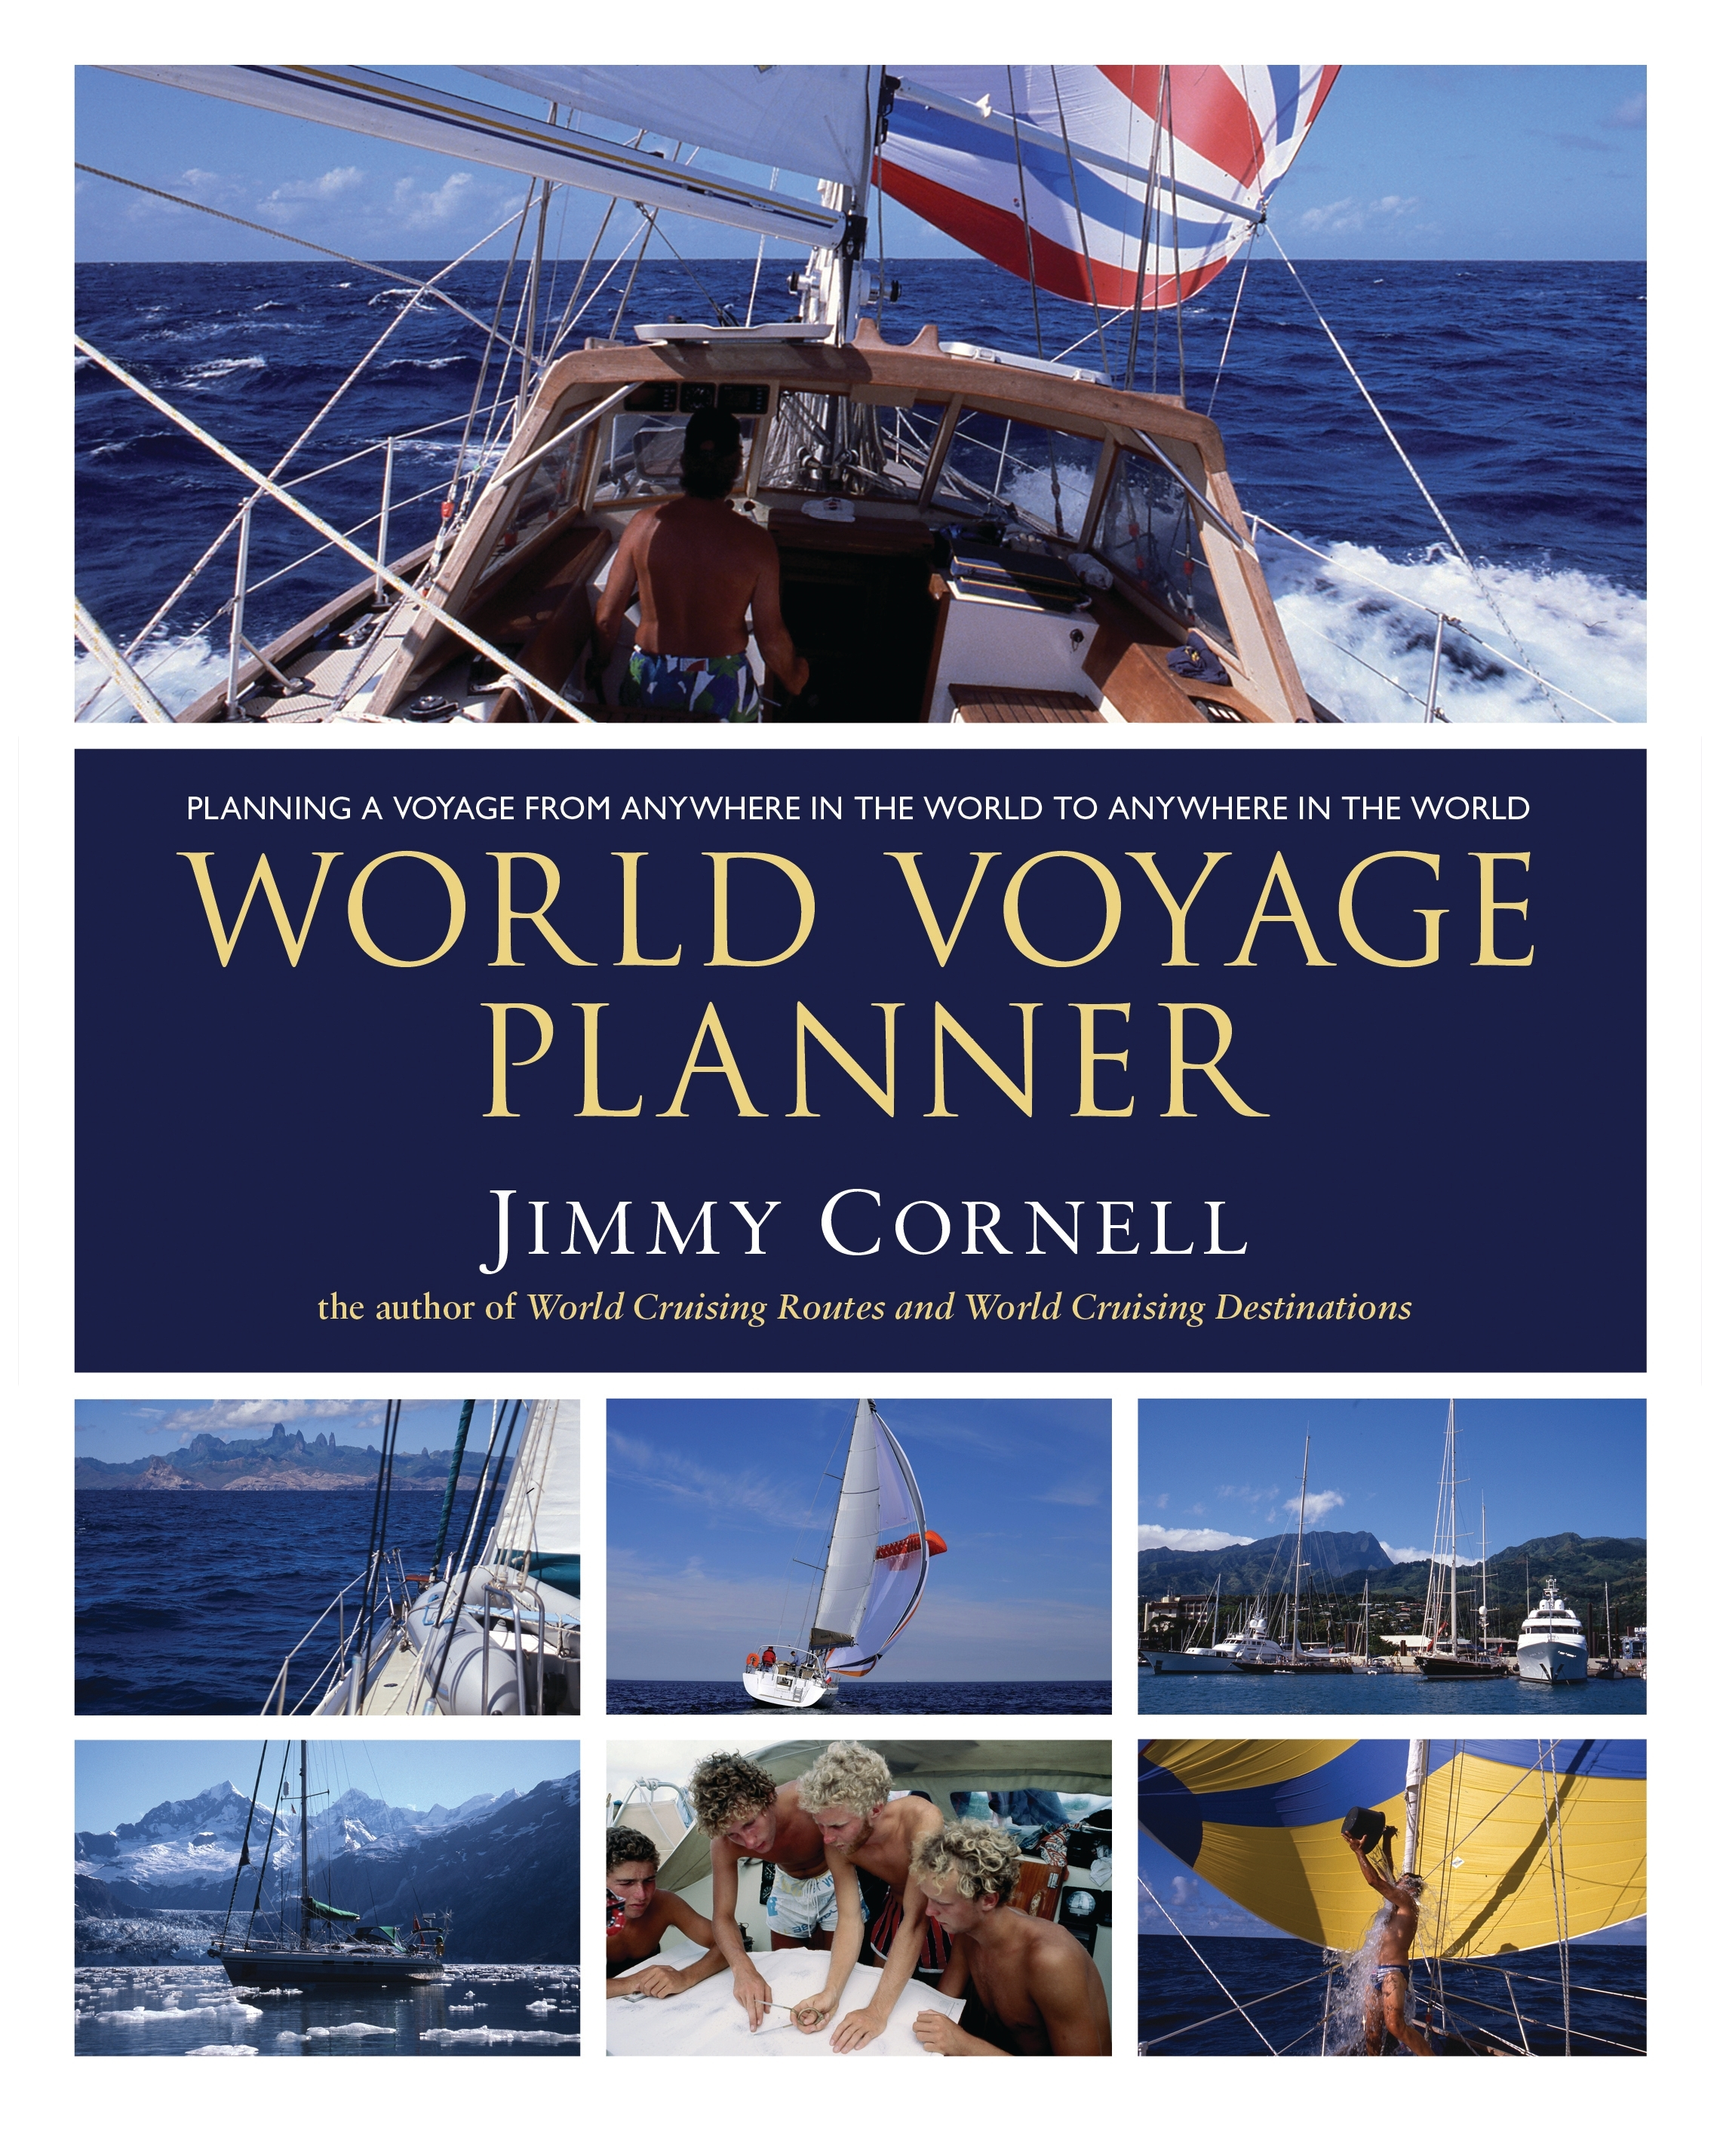 World Voyage Planner Planning a voyage from anywhere in the world to anywhere in the world